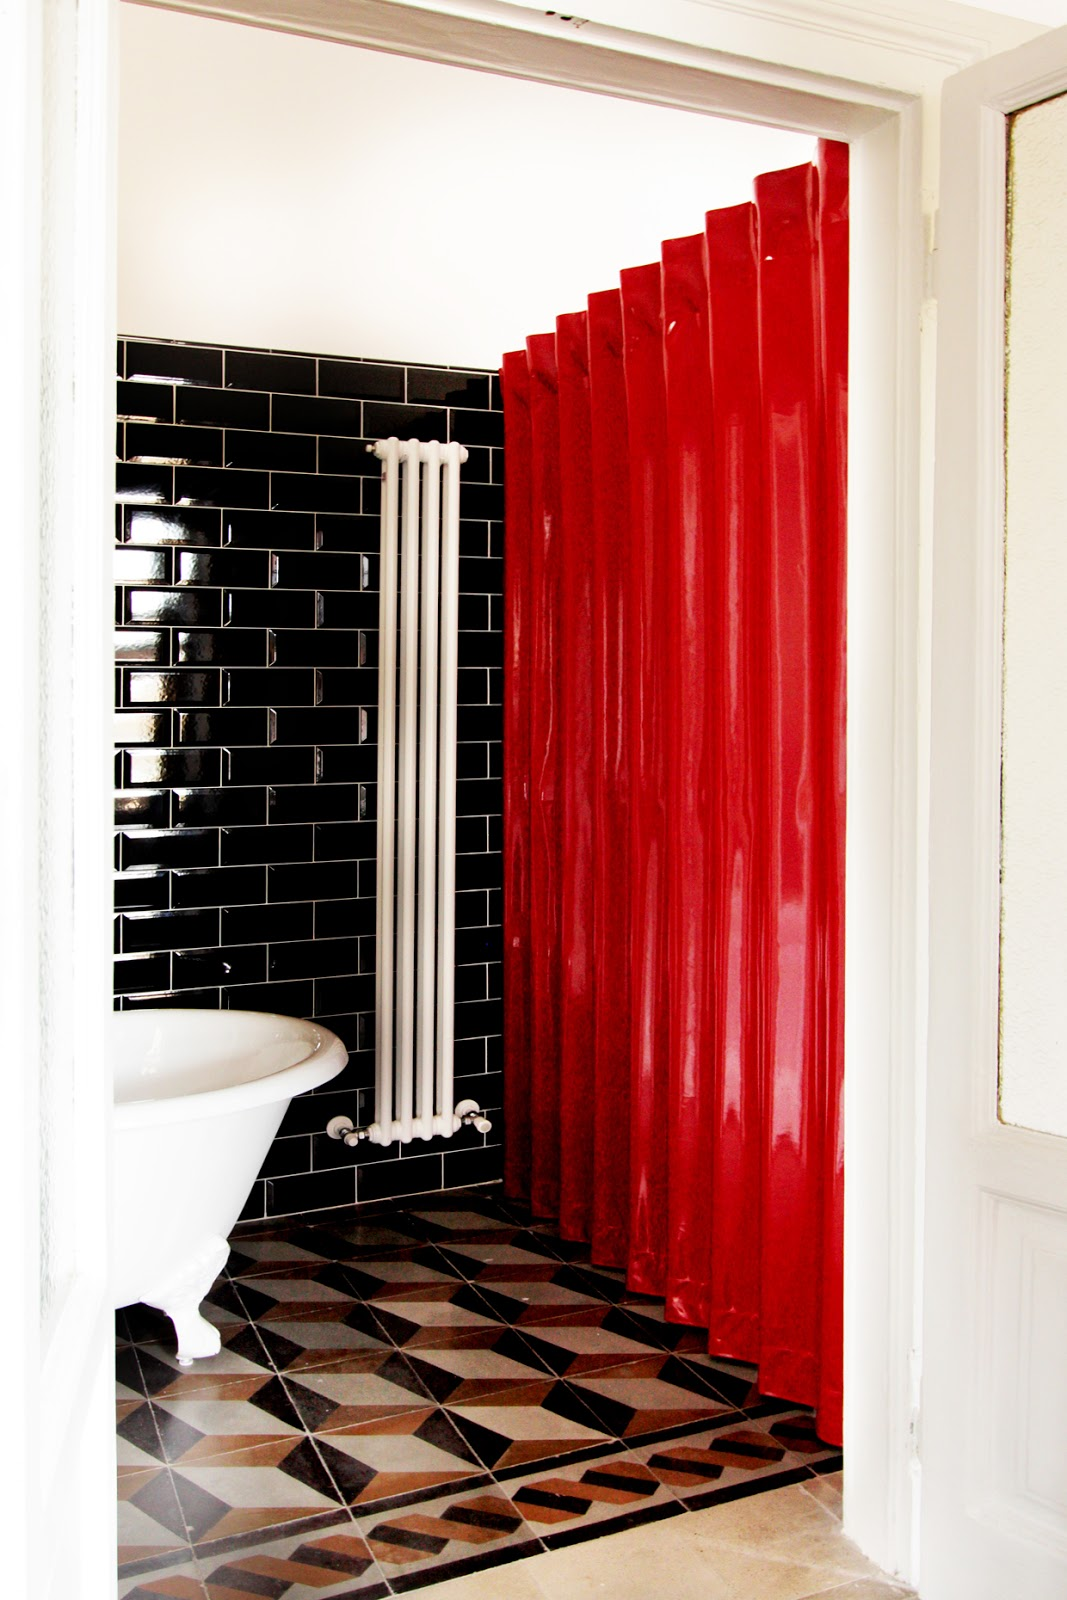 Accordion doors glossy red folding door by architect - Porte a soffietto milano ...